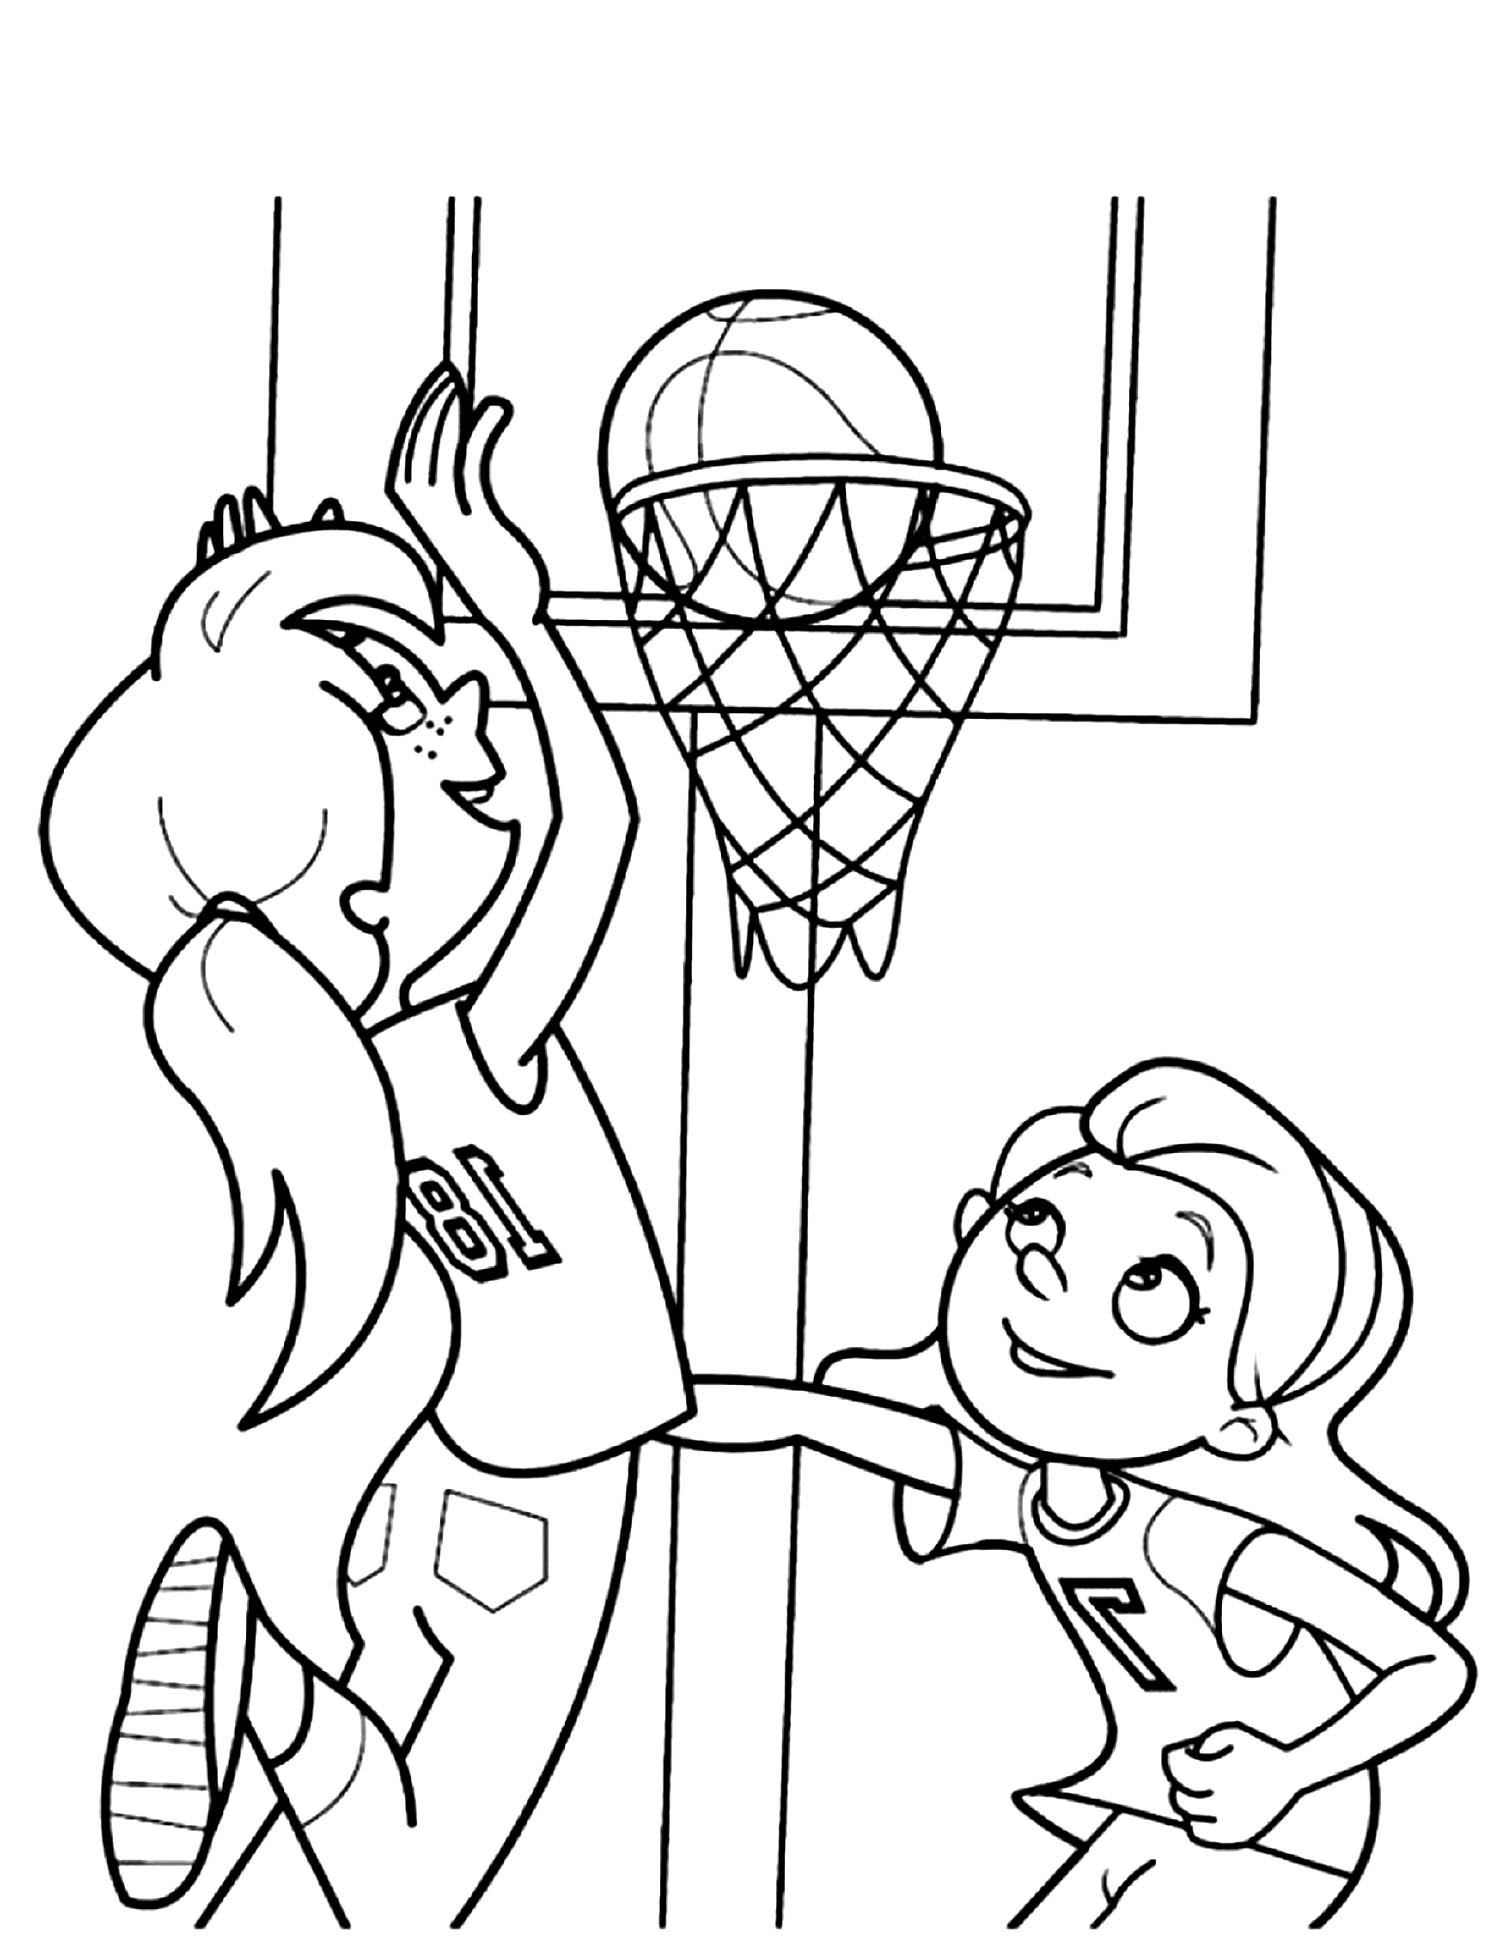 basketball player coloring pages basketball for children basketball kids coloring pages basketball coloring player pages